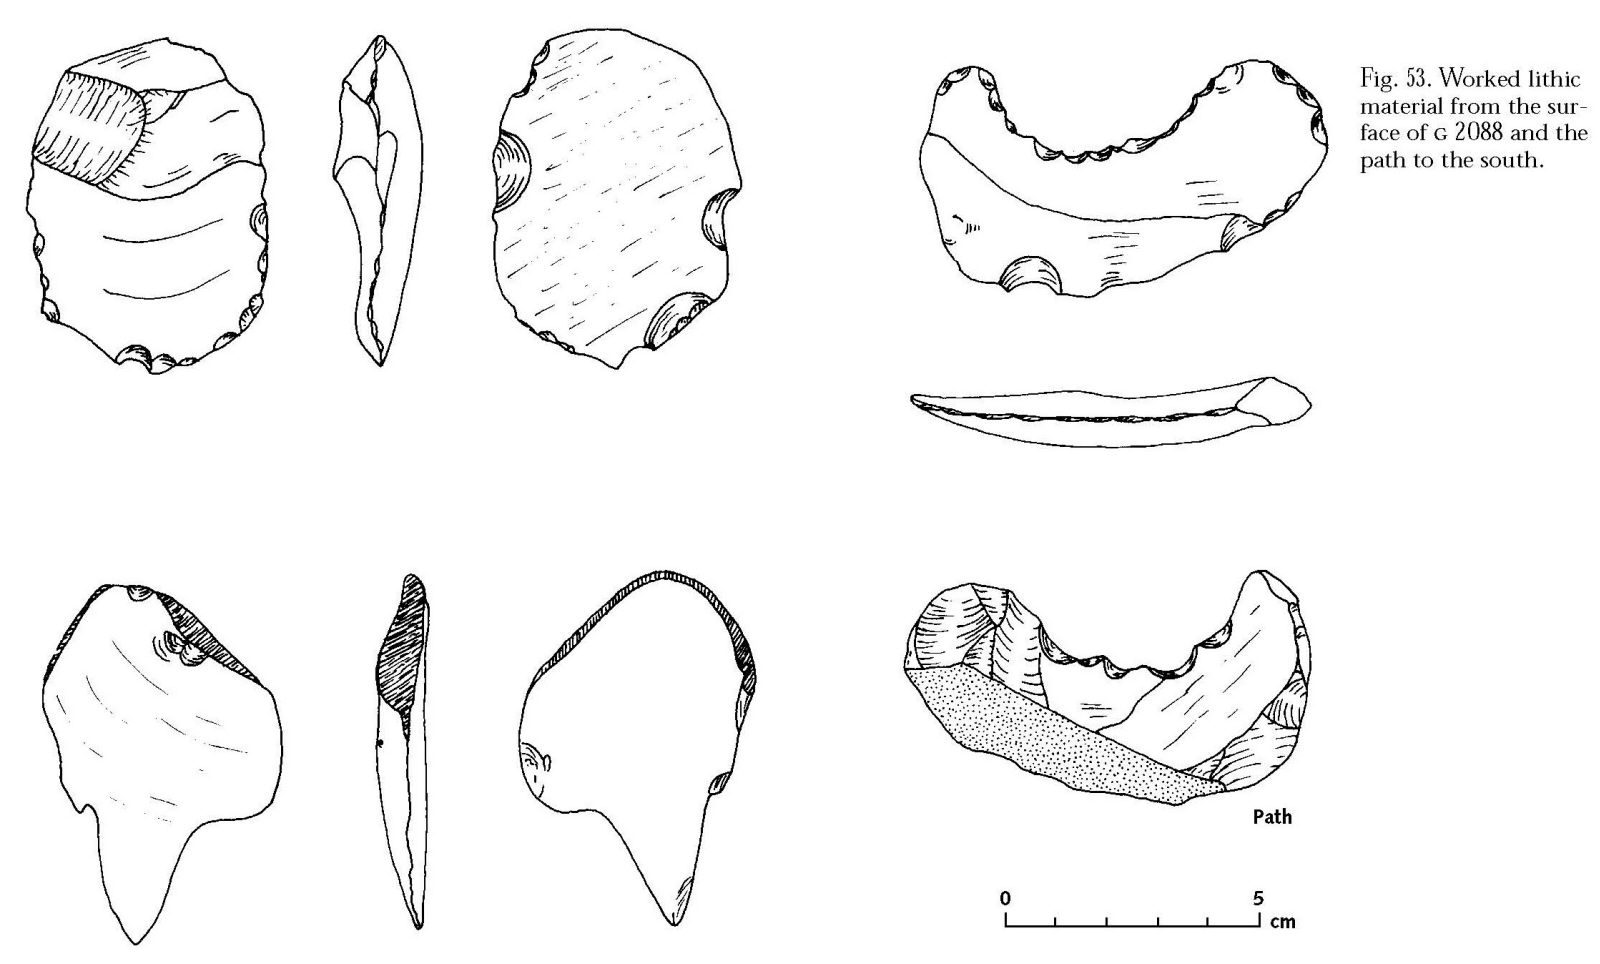 Drawings: G 2088: lithics